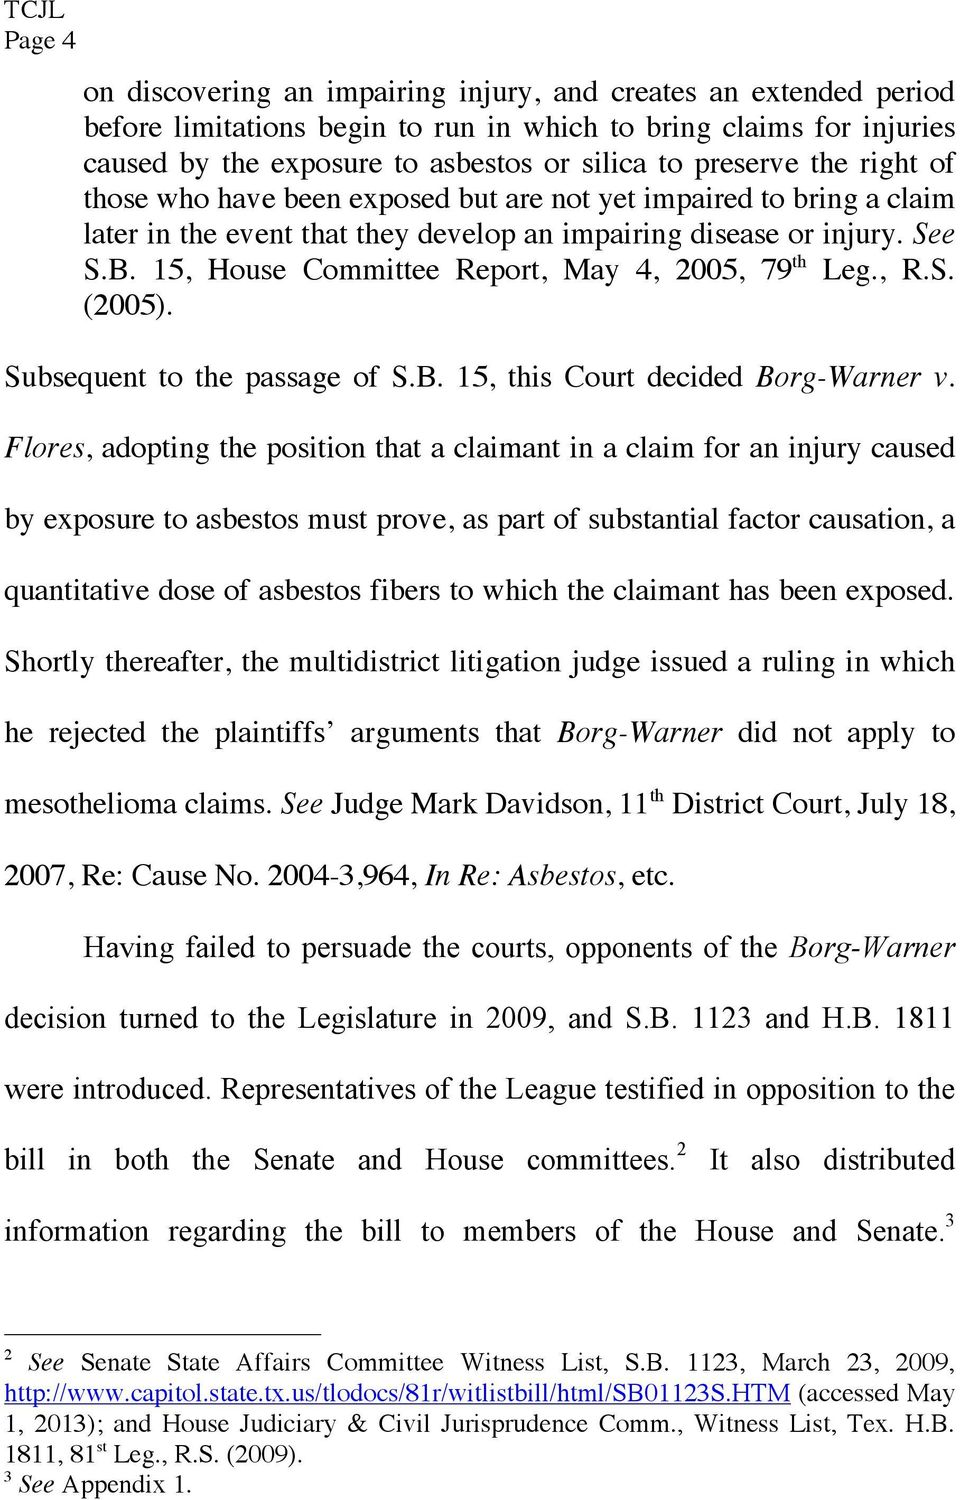 15, House Committee Report, May 4, 2005, 79 th Leg., R.S. (2005). Subsequent to the passage of S.B. 15, this Court decided Borg-Warner v.